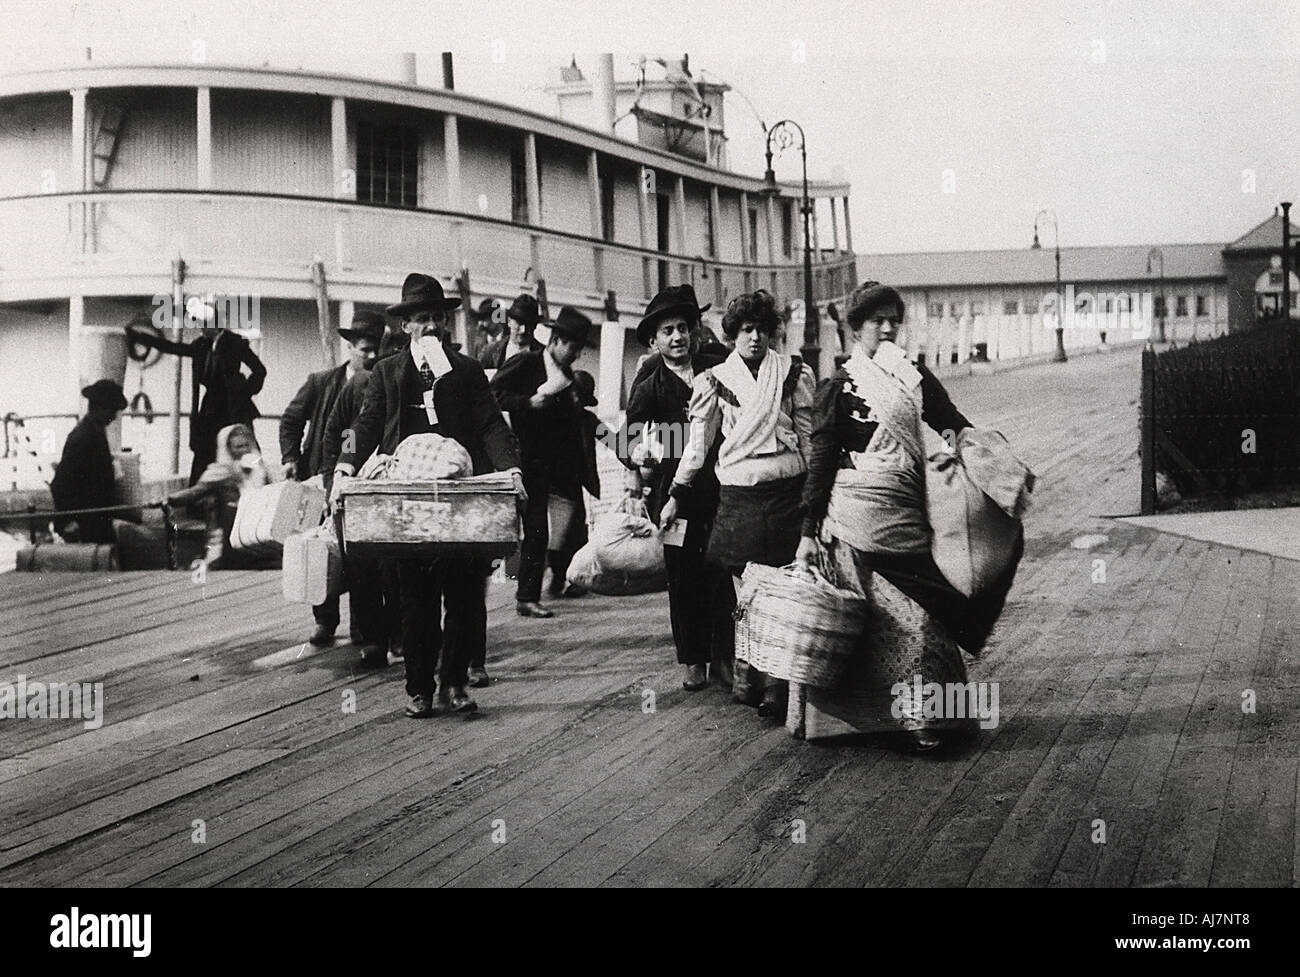 Immigrants To The Usa Landing At Ellis Island New York